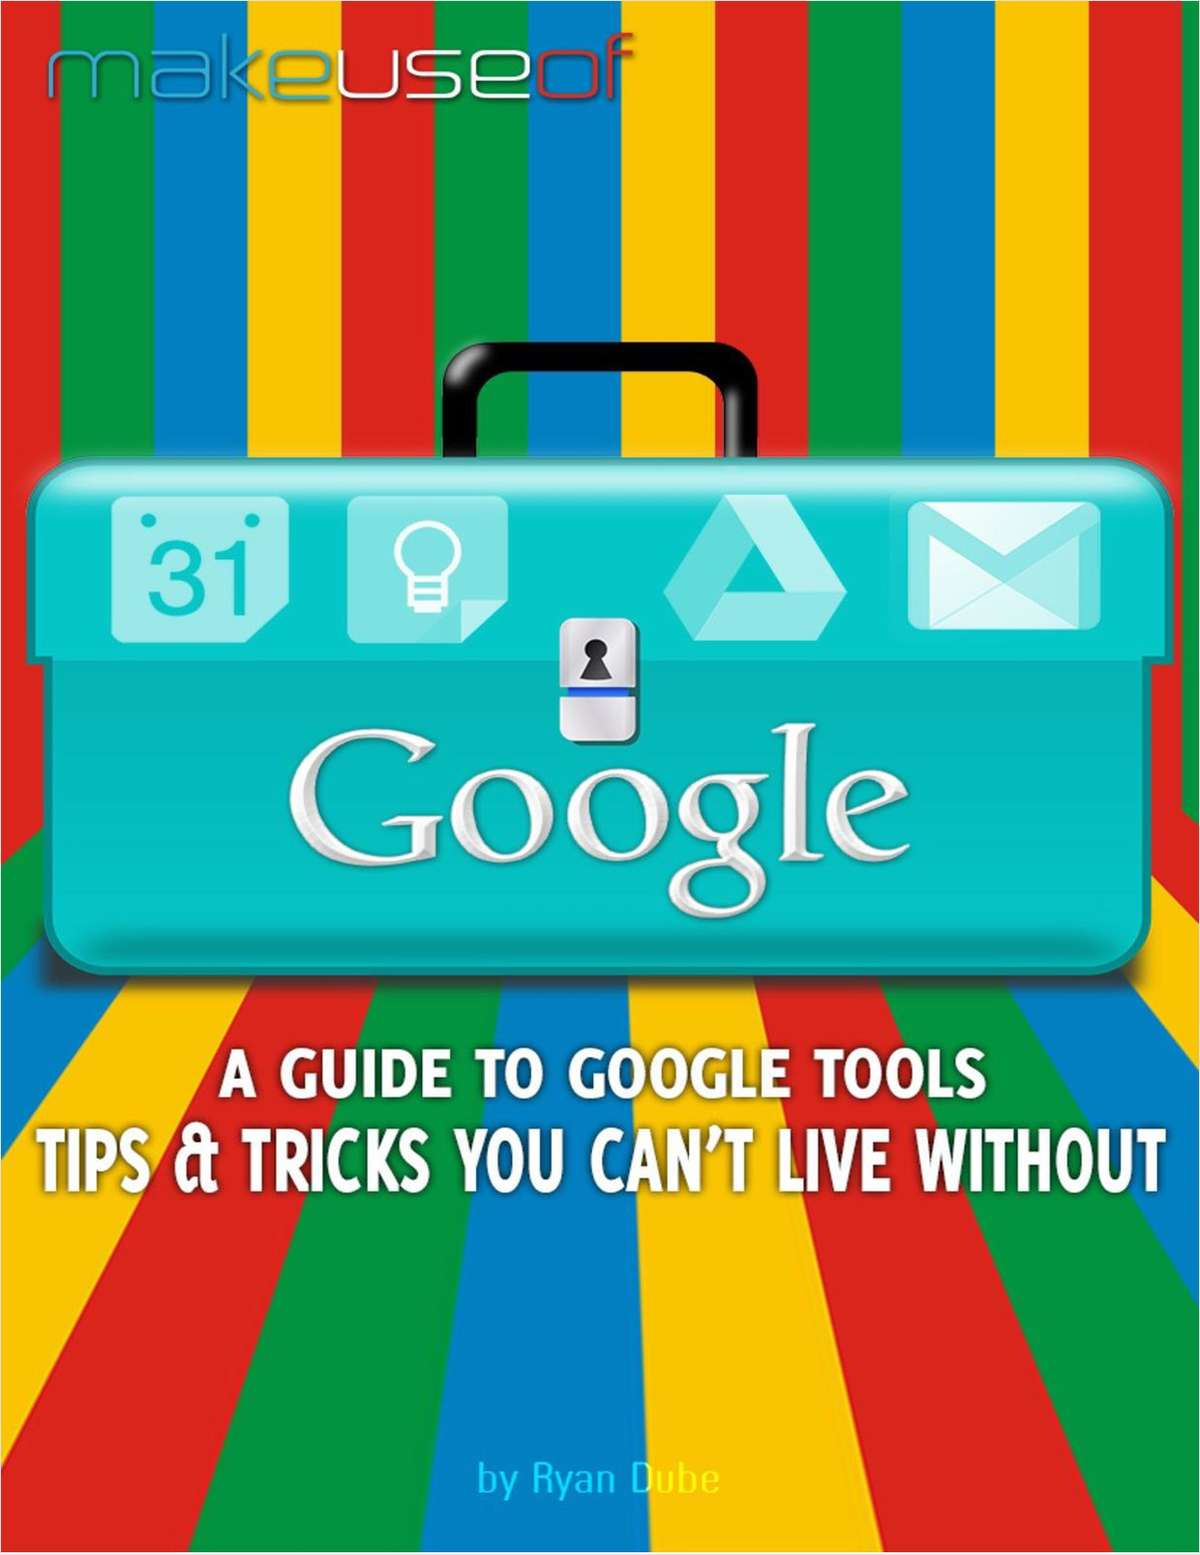 A Guide to Google Tools, Tips & Tricks You Can't Live Without